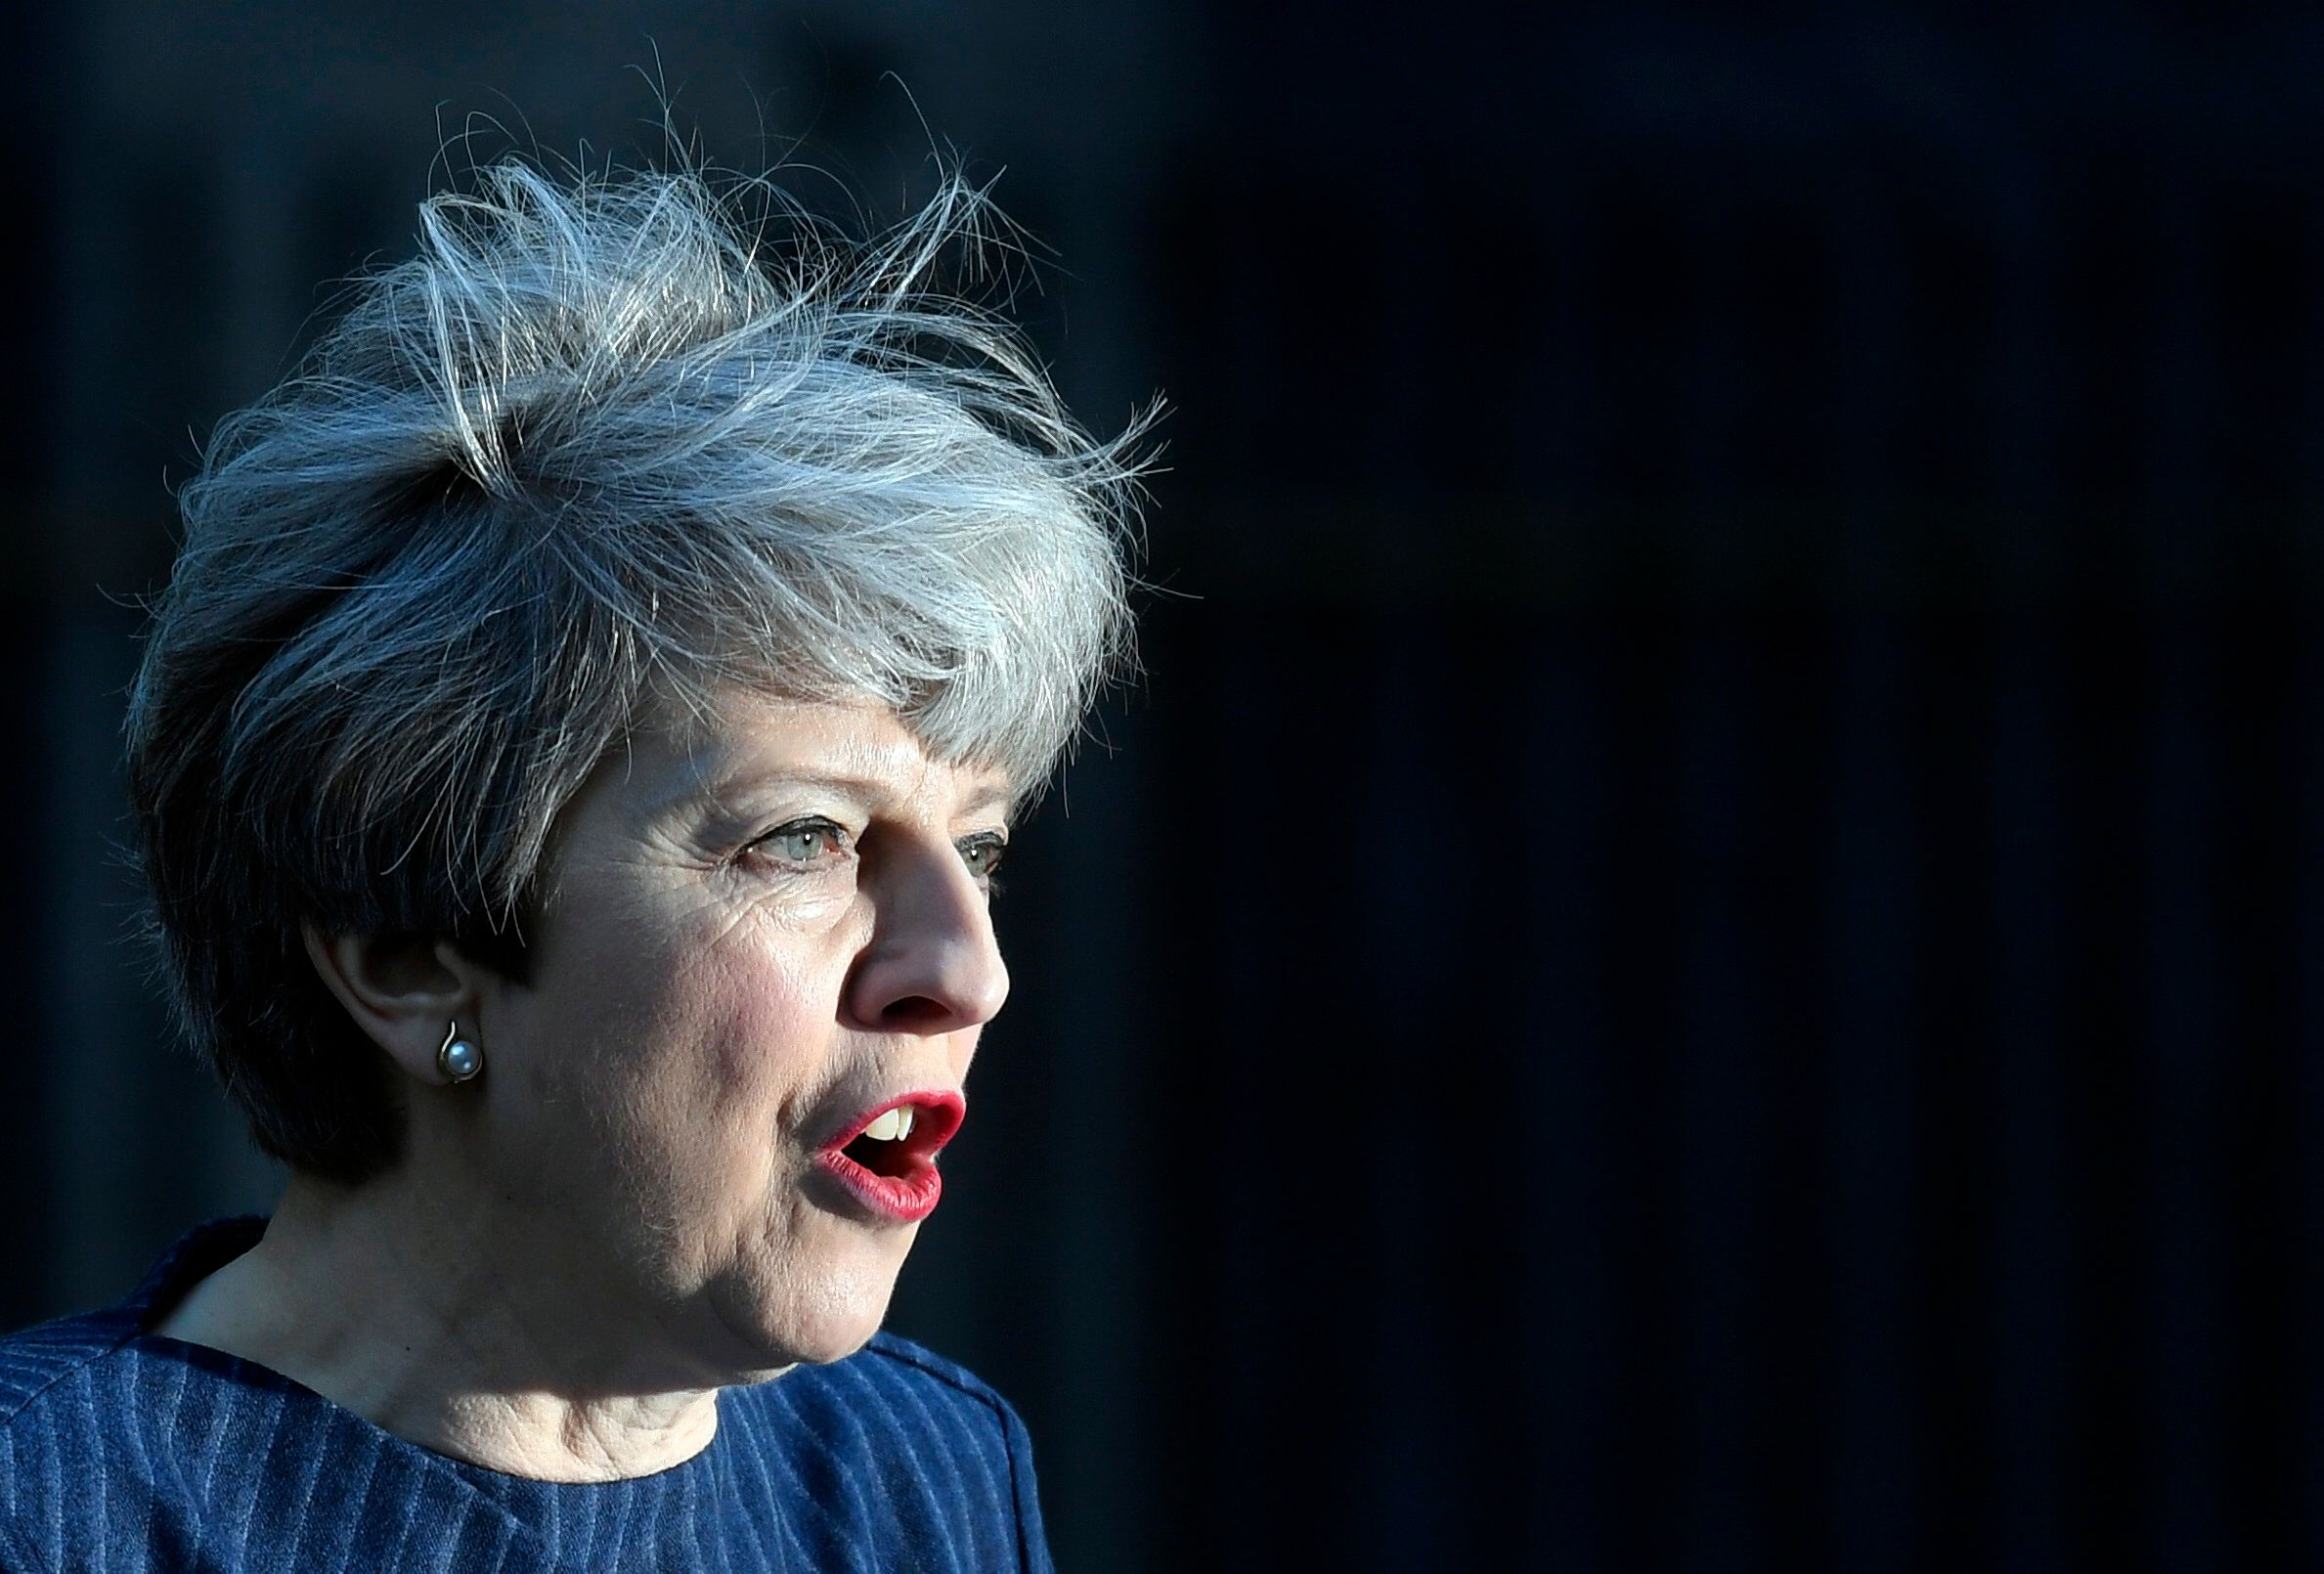 Britain's Prime Minister Theresa May speaks to the media outside 10 Downing Street, in central  London, Britain April 18, 2017.  British Prime Minister Theresa May called on Tuesday for an early election on June 8, saying the government had the right plan for negotiating the terms of Britain's exit from the European Union and she needed political unity in London.       REUTERS/Toby Melville